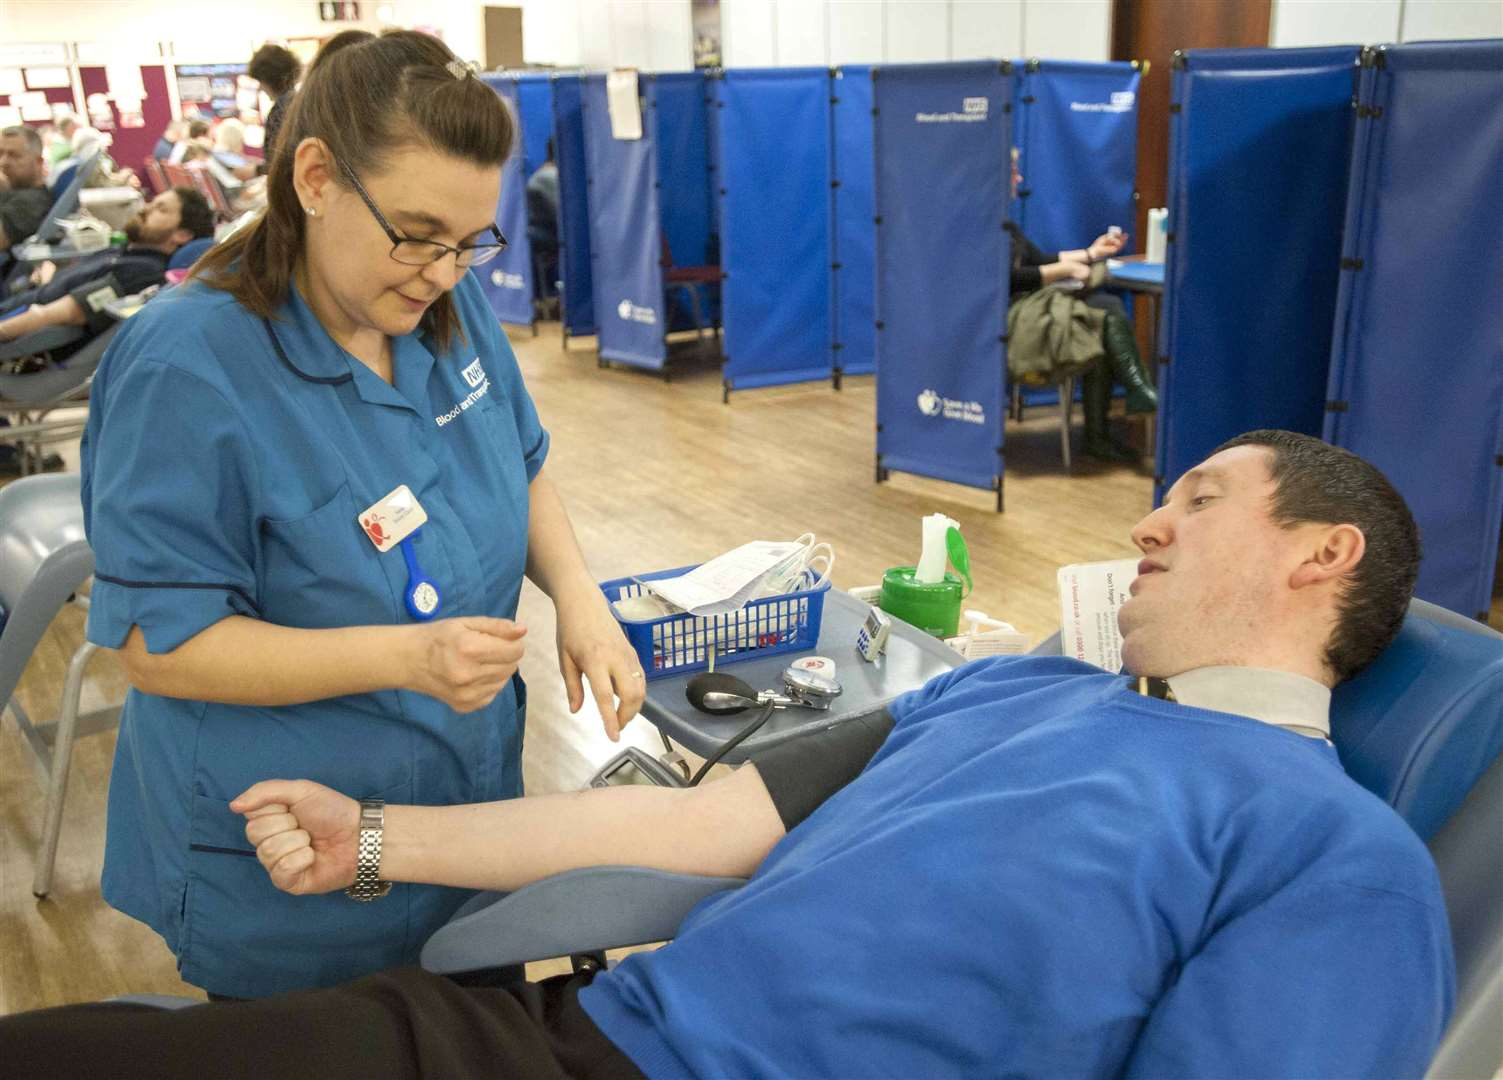 Lynn News News Editor Alister Webb preparing to become a New Blood Donor. Pictured Allister with Nurse Sarah Parfitt.at The Blood Donor session King's Centre King's Lynn. (7421585)